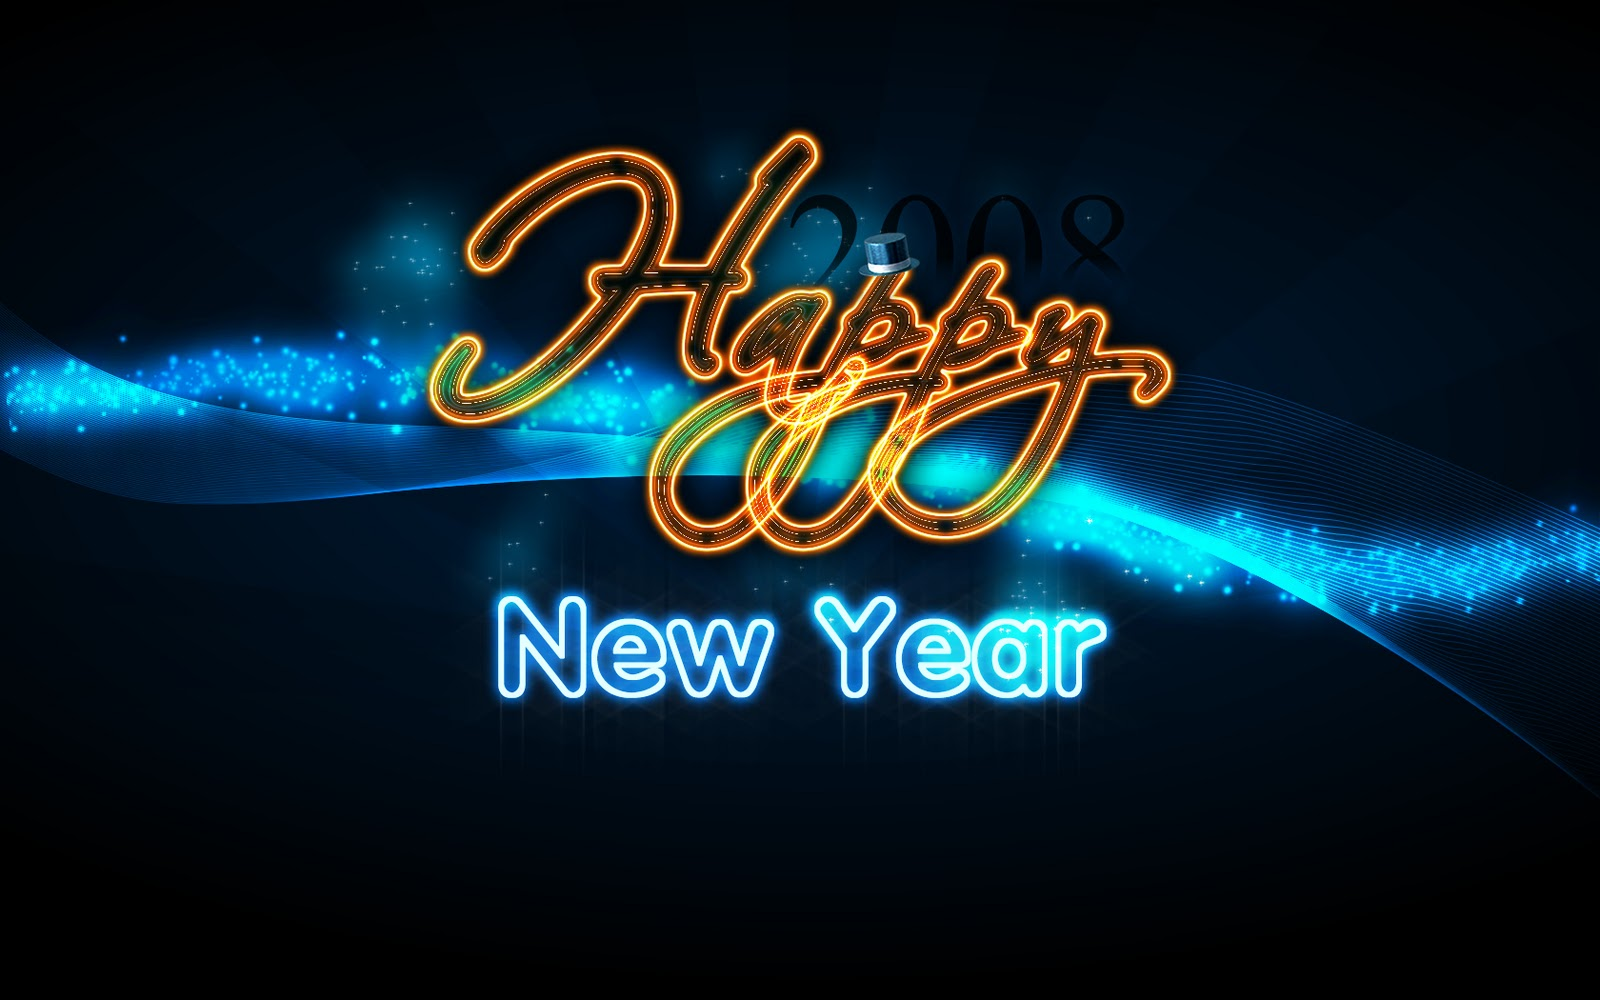 http://2.bp.blogspot.com/-2HeQjrd7IaA/ULtbRpQG_HI/AAAAAAAANuE/QoR8ewIrotY/s1600/New+Year+Hd+Wallpapers+2013+5.jpg